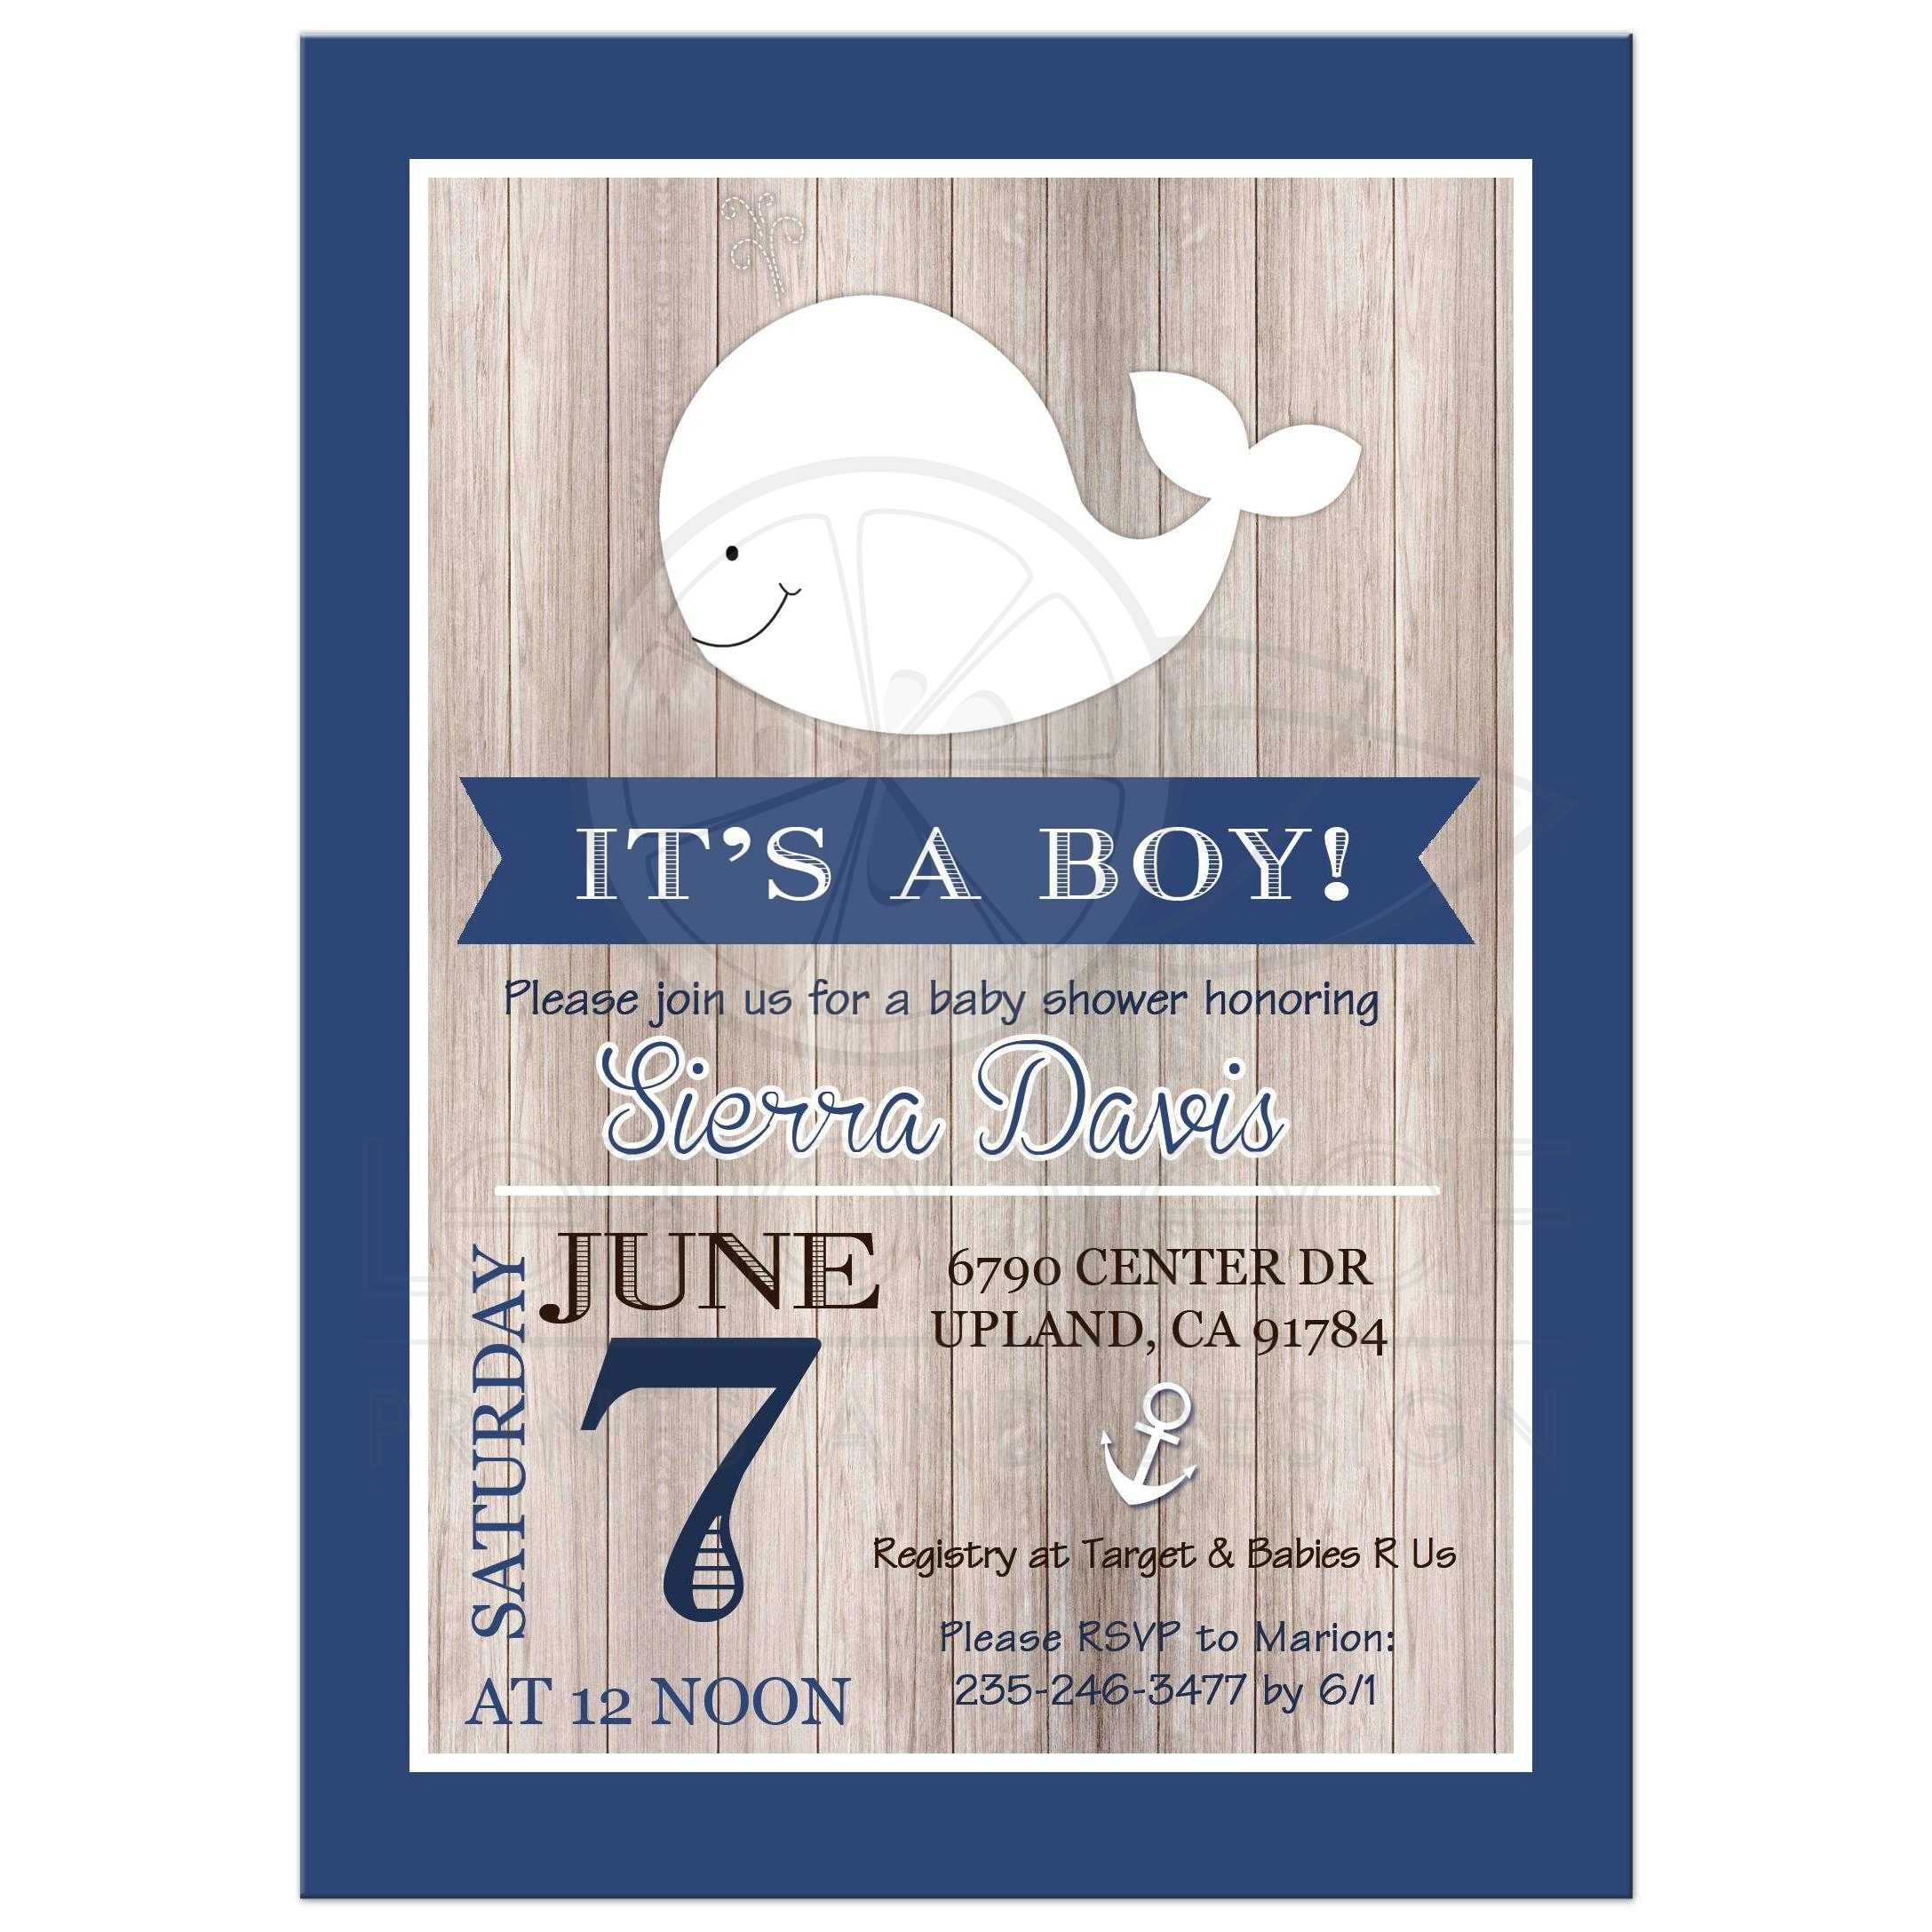 Rustic nautical whale white and navy baby shower invitation navy blue and white rustic whale nautical baby shower invitation filmwisefo